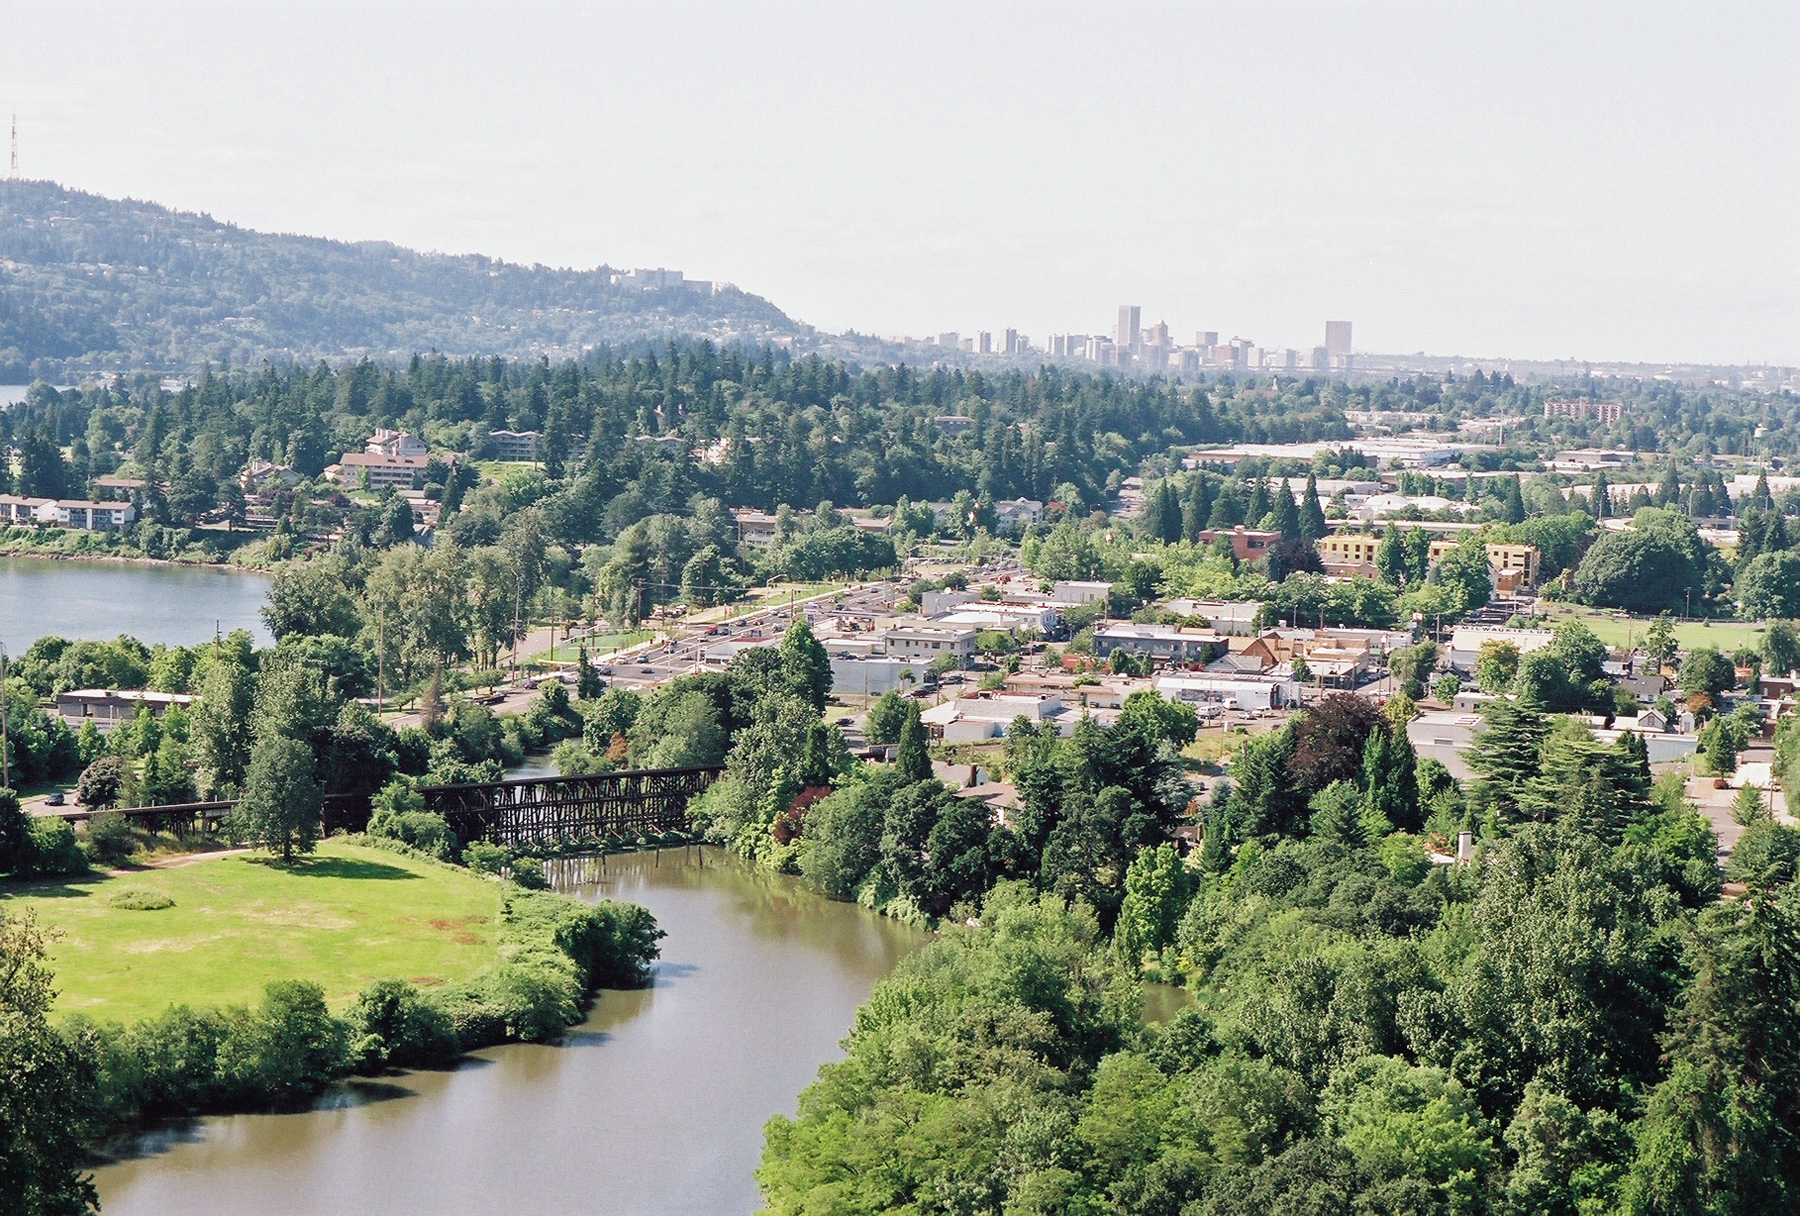 Downtown Milwaukie, Kellogg Lake and Willamette River